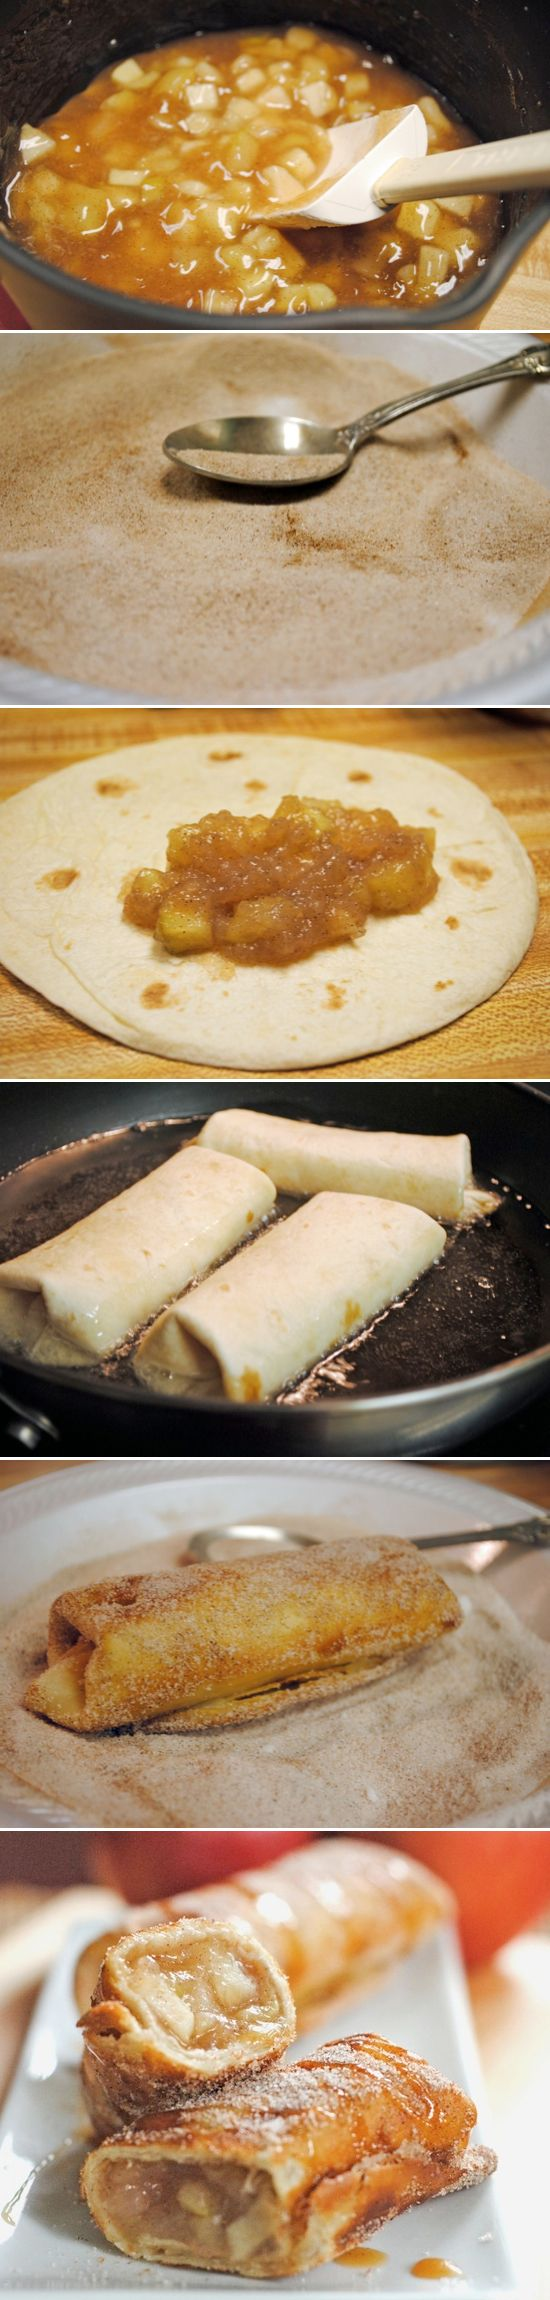 apple cinnamon chimichangas just like taco villa apple buritos! @Tammy Smitherman